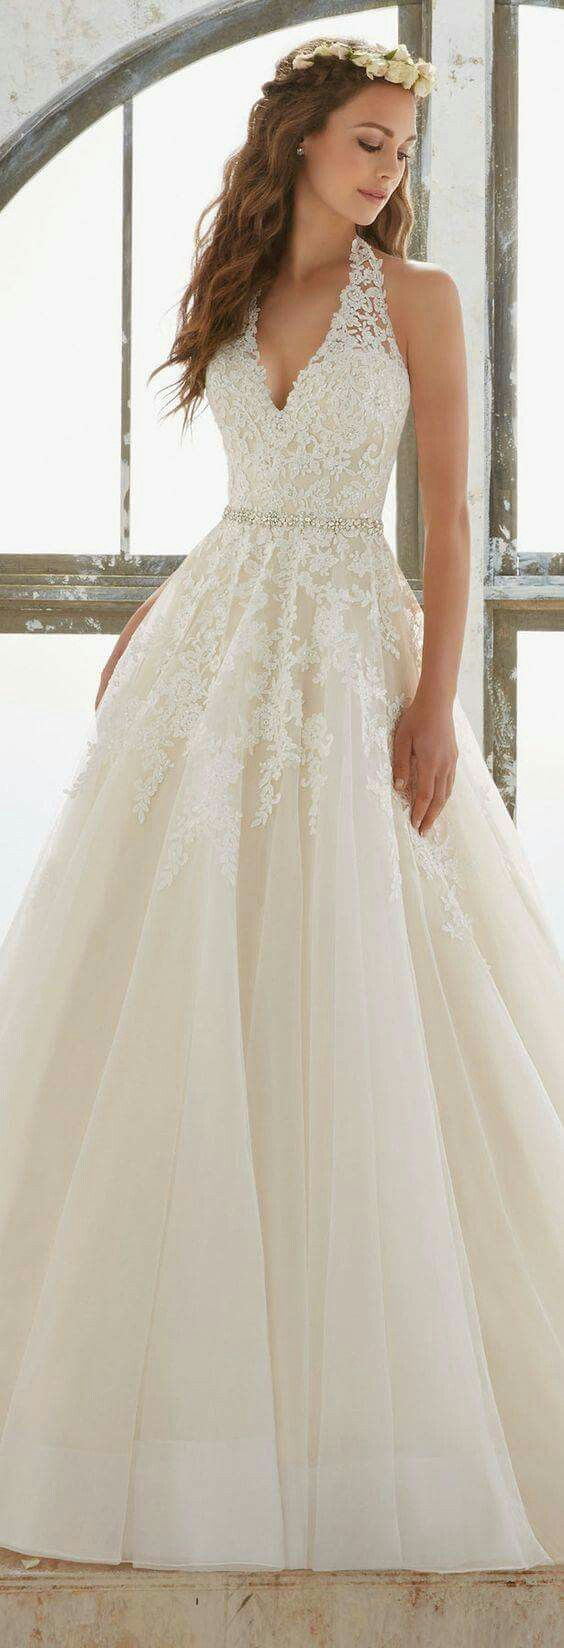 Bad wedding dresses   Various Ball Gown Wedding Dresses For Amazing Look heart See